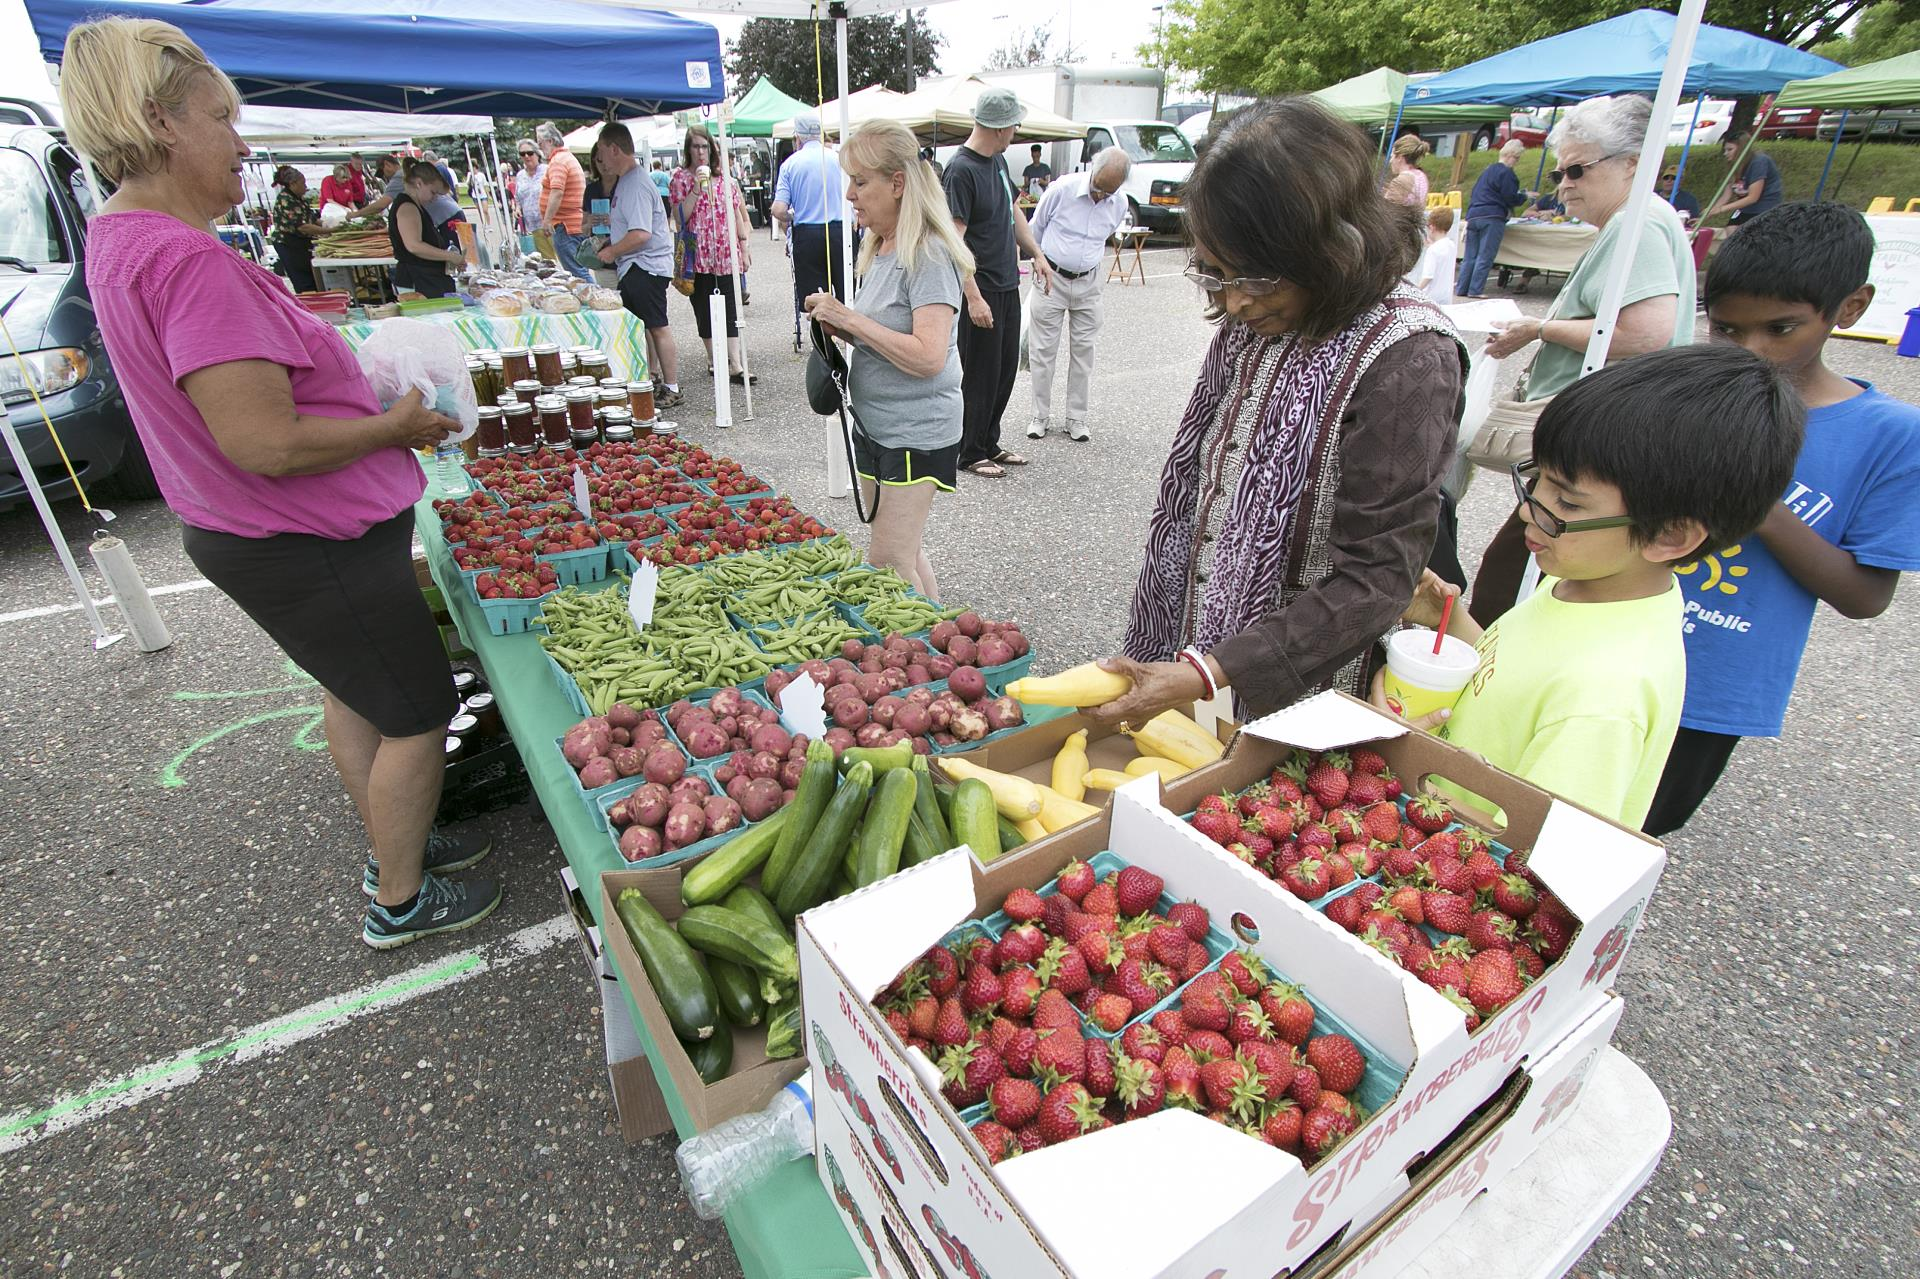 Families browsing produce tables at Plymouth's outdoor farmers market